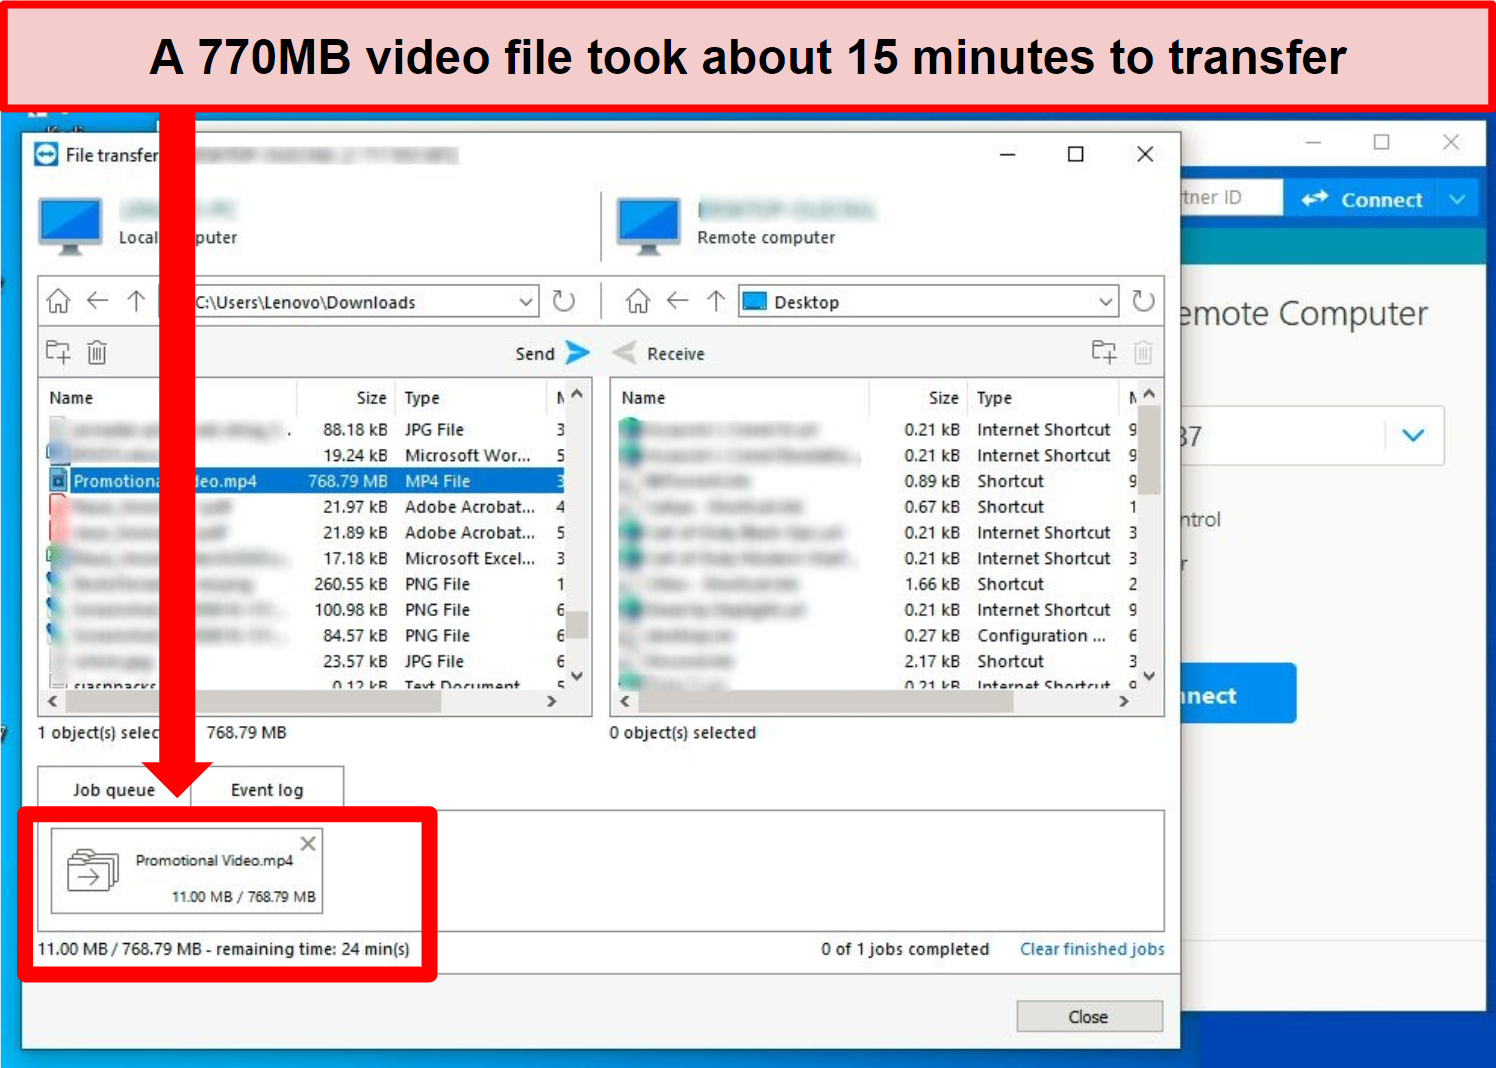 Screenshot of TeamViewer's file transfer windows while a video file is sent from one PC to another